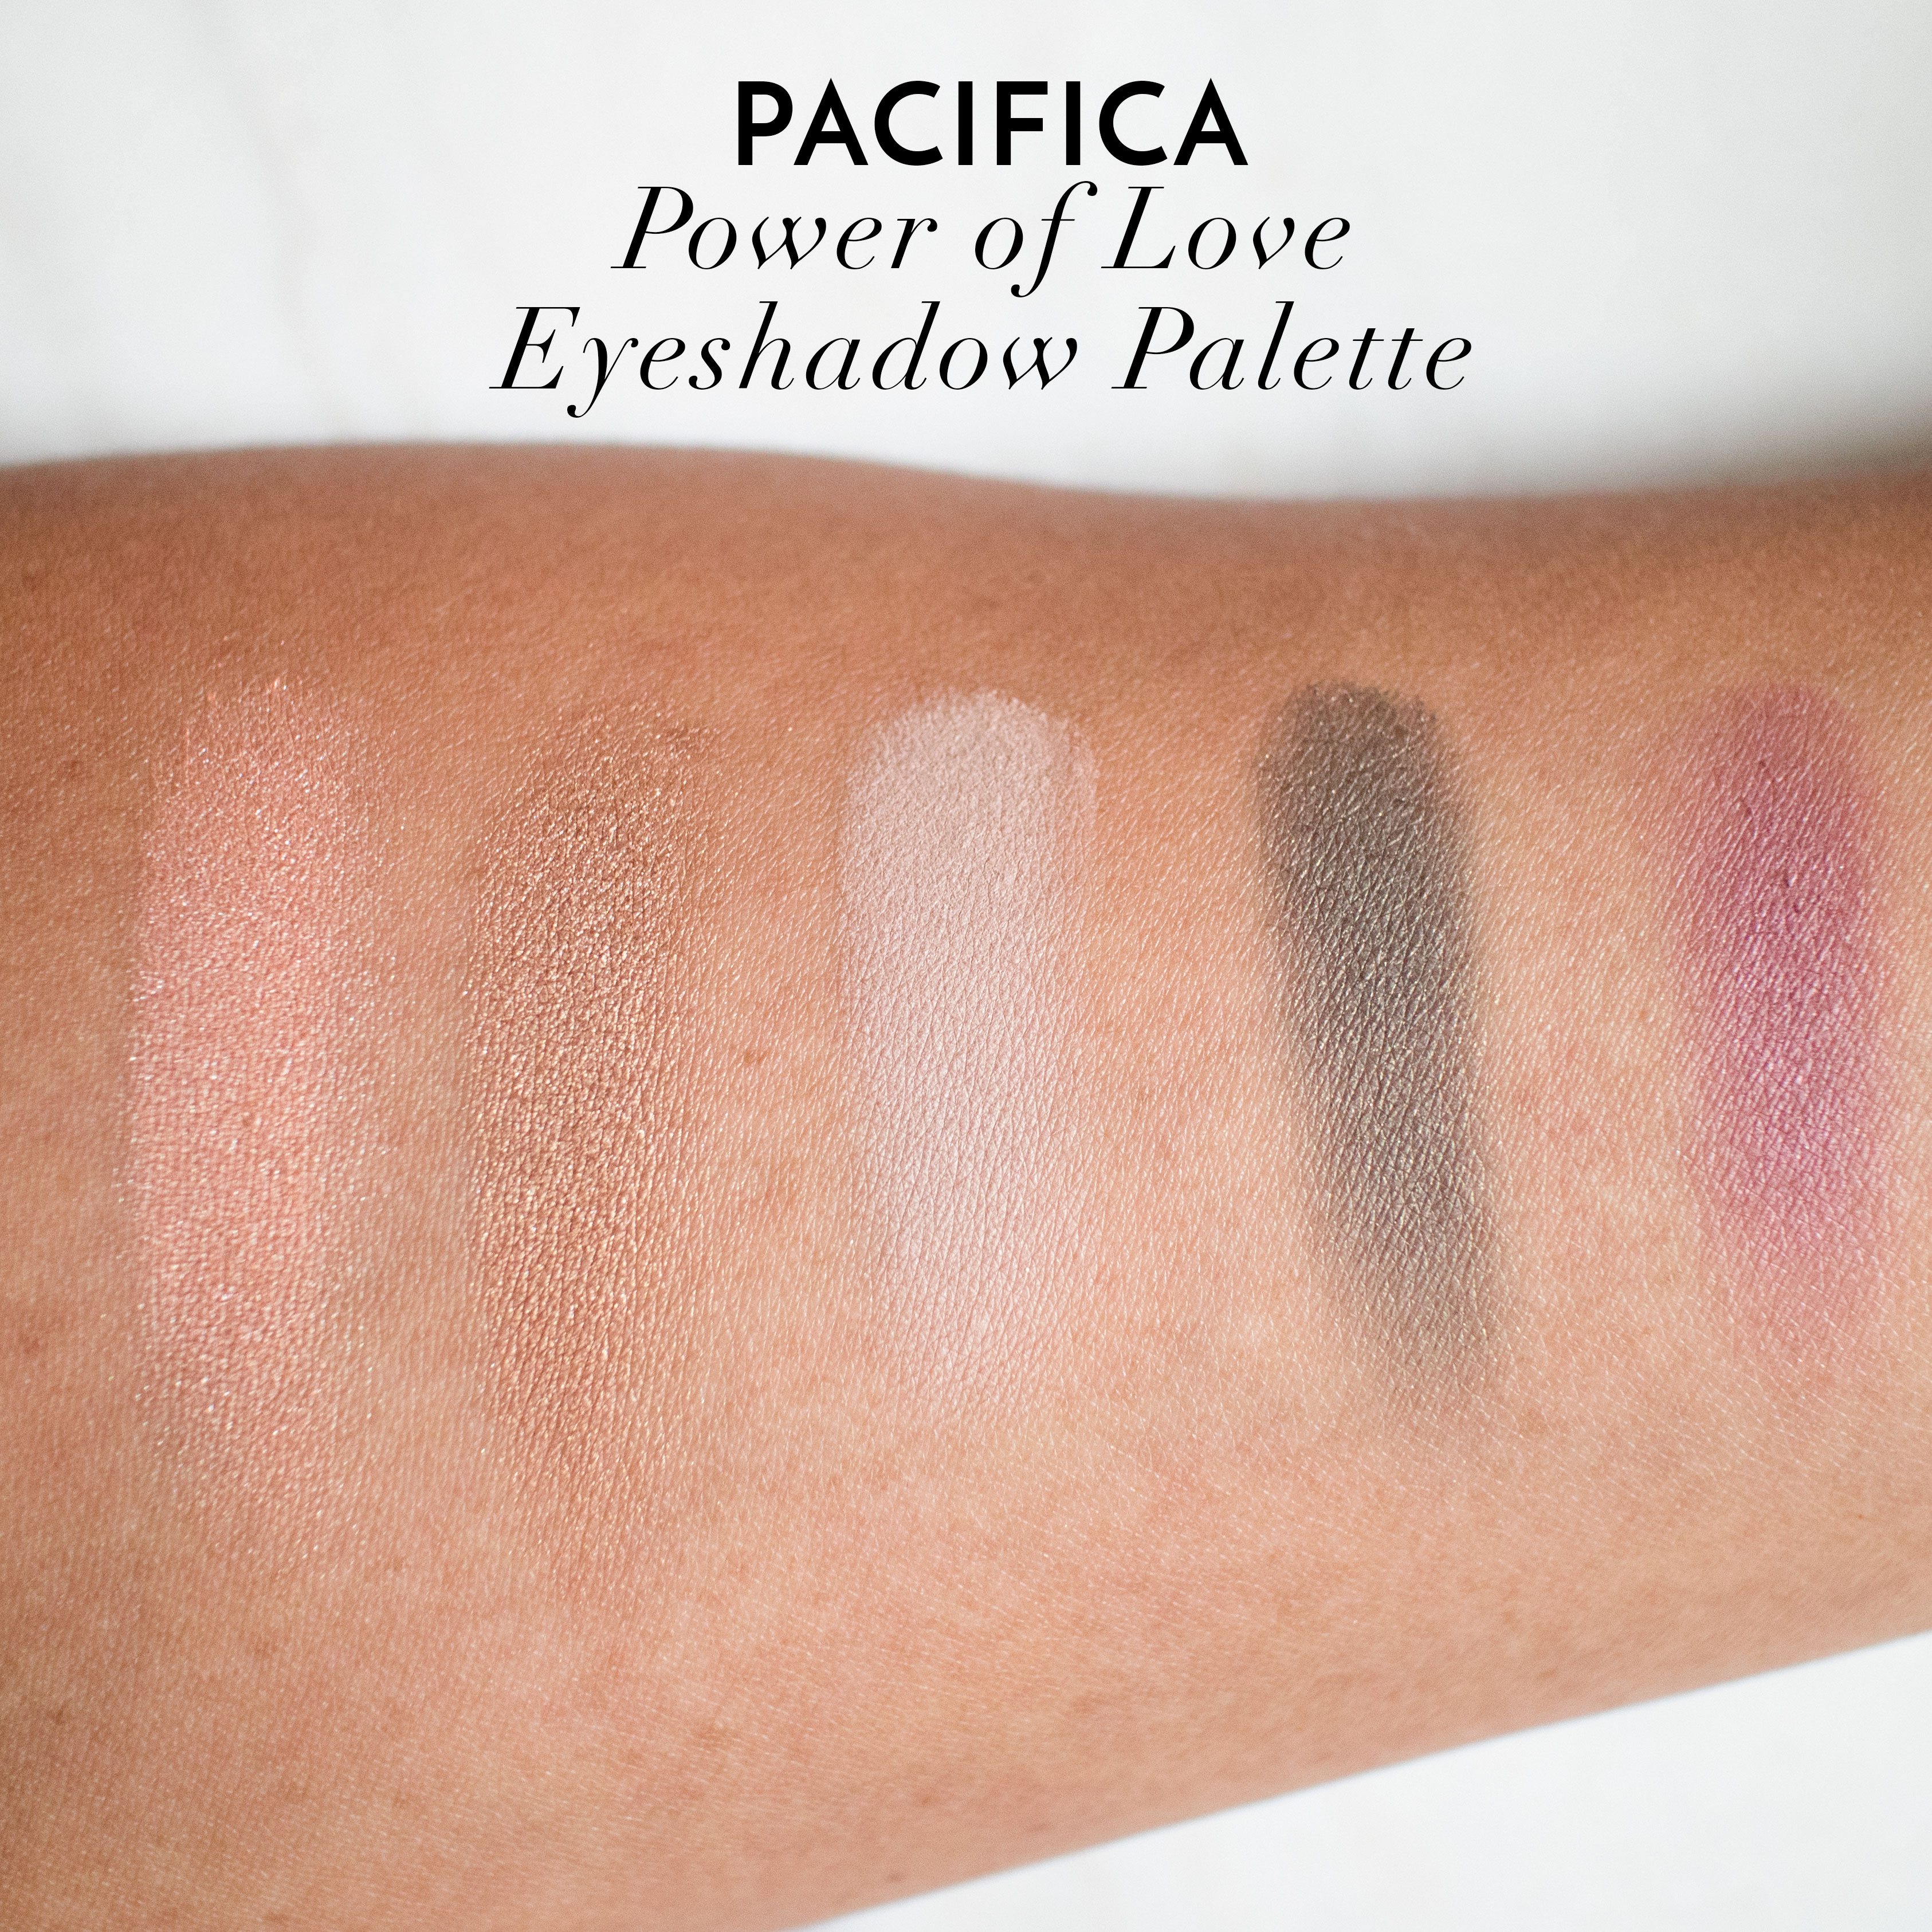 Pacifica Power of Love Eyeshadow Palette Swatches & Coco Pure Makeup Removing Wipes Review